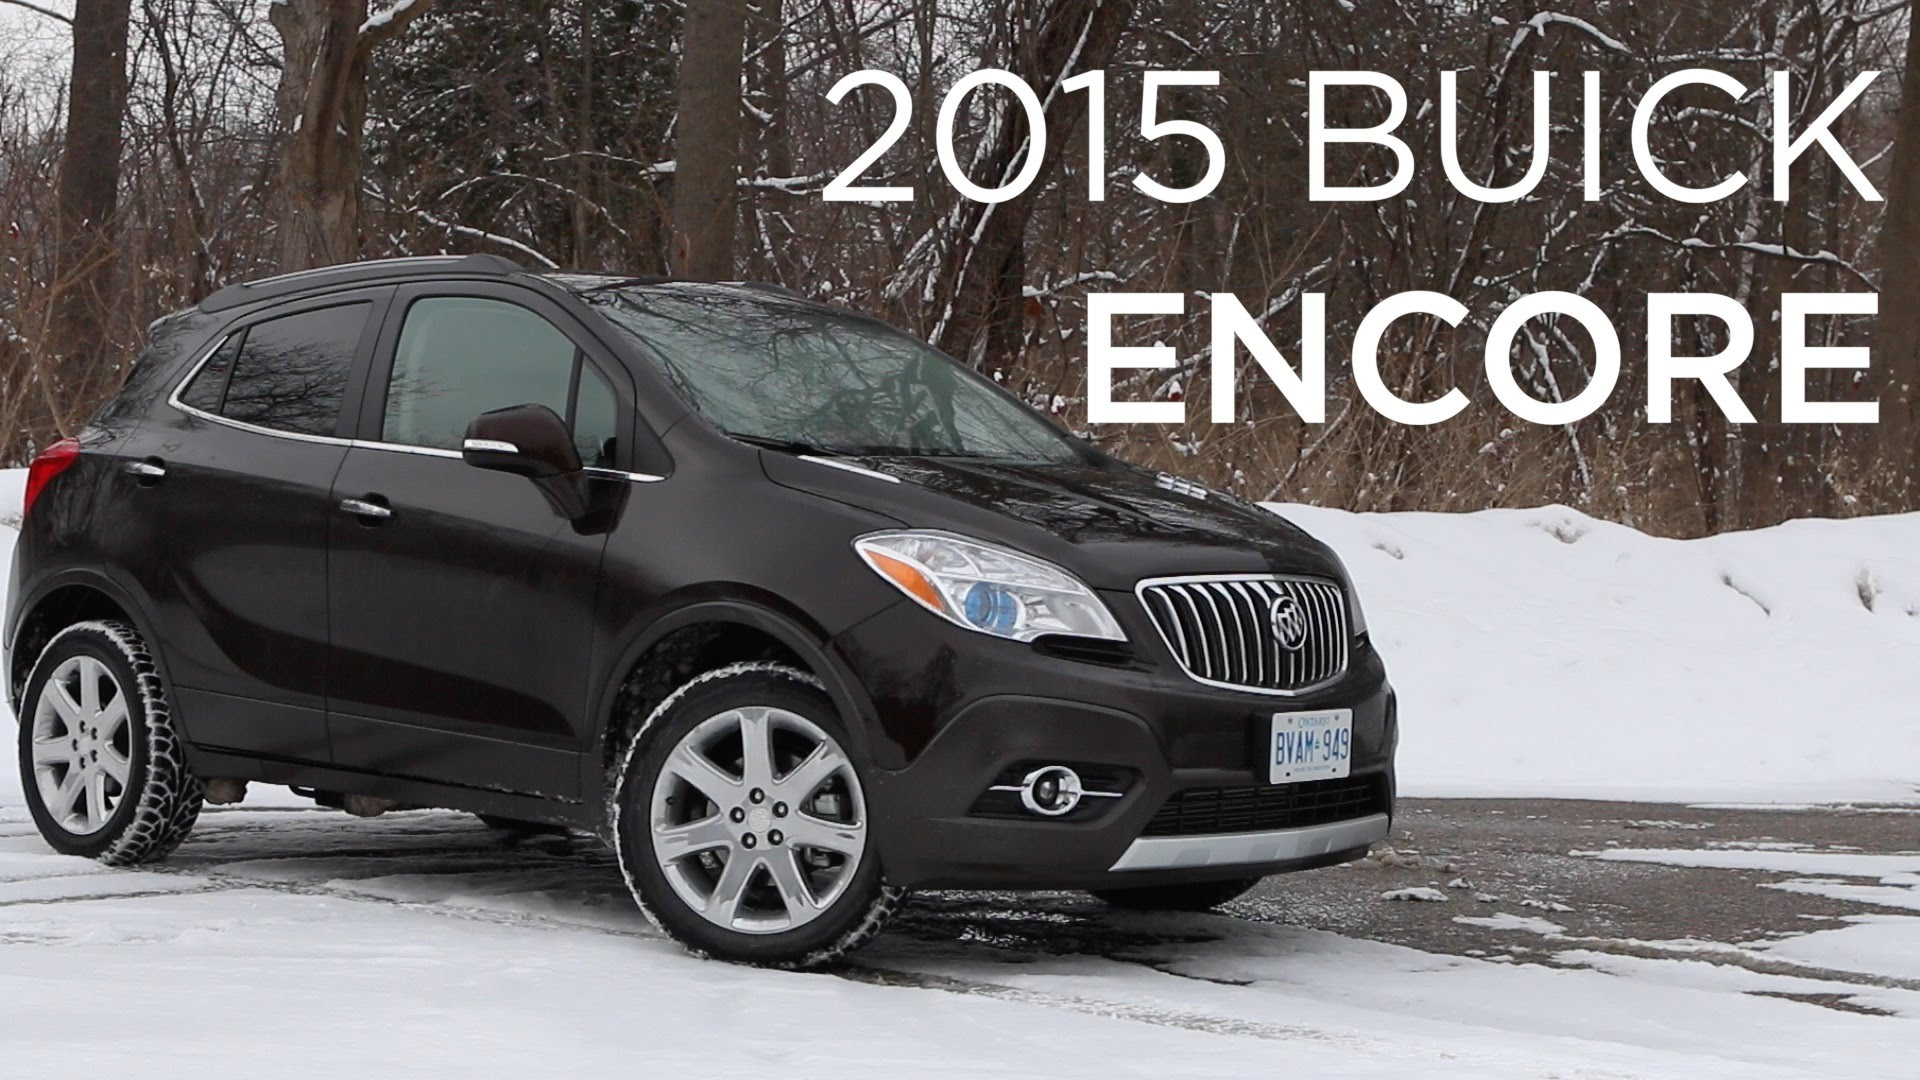 be crossover where american available efficient buick com most will hustoncadillacbuickgmc is encore made the fuel pin